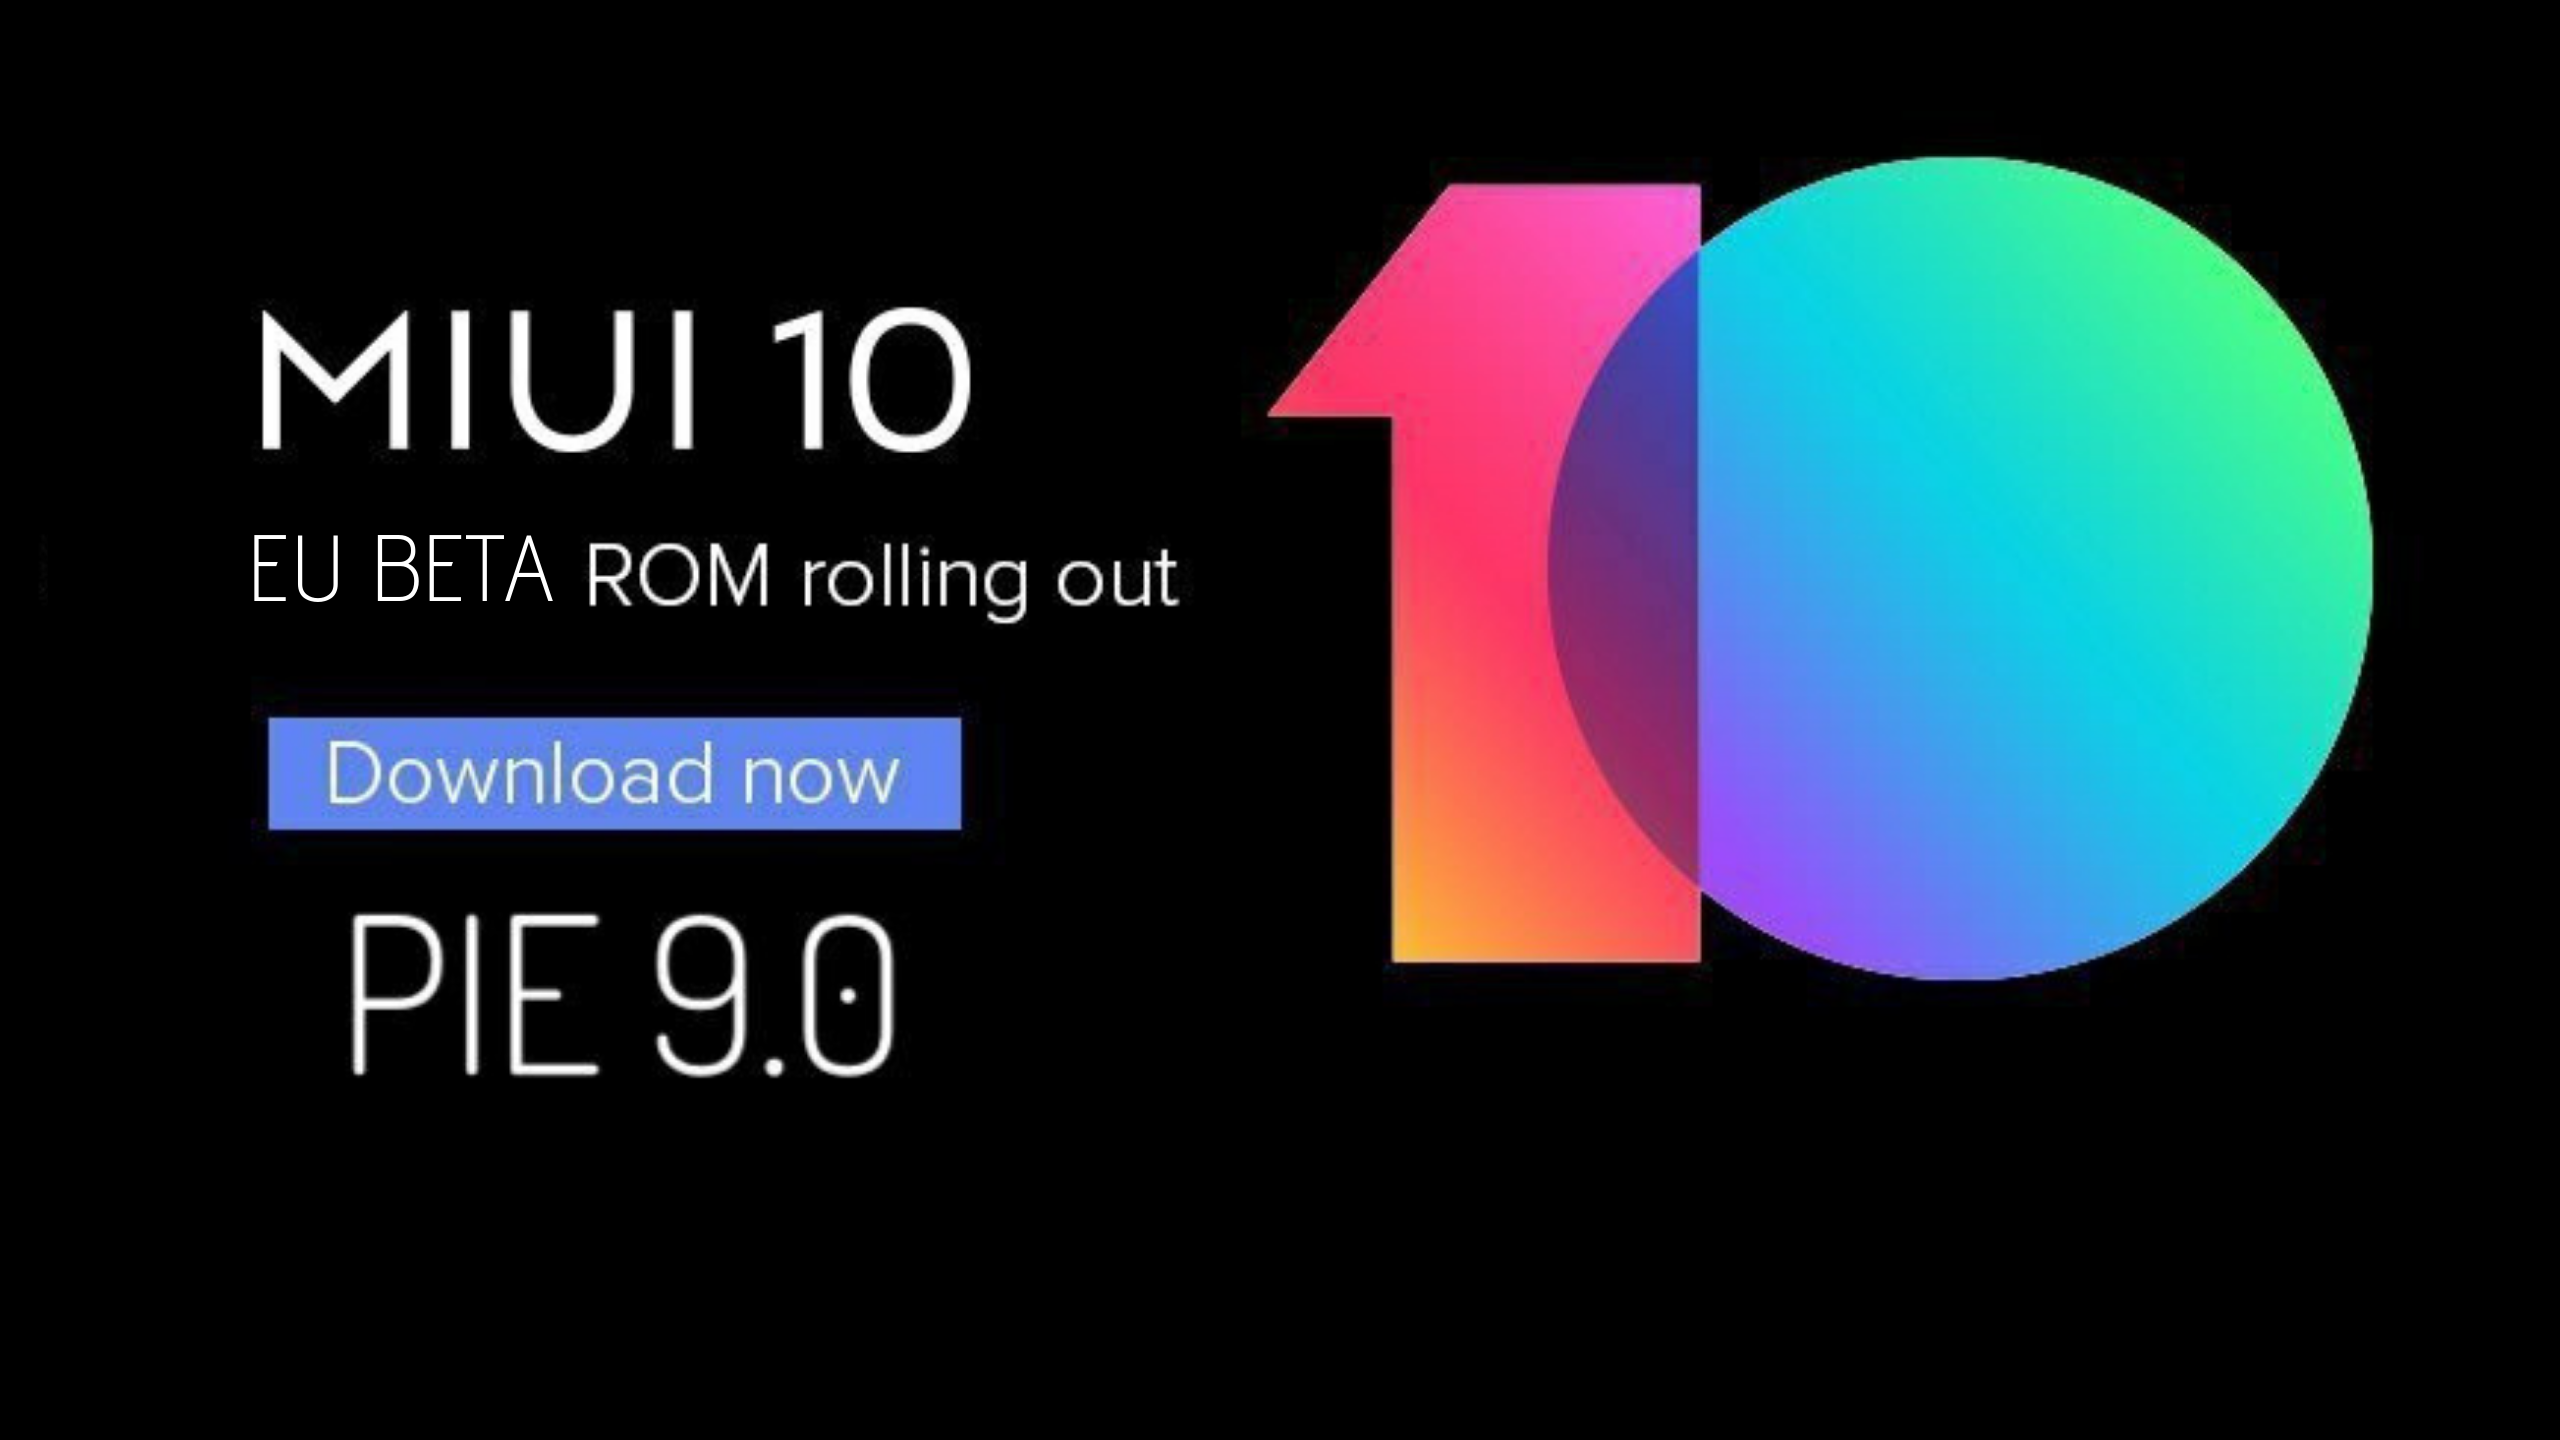 Miui 10 9 8 1 EU Beta Update for Redmi Note 5 Pro- Download Link - MIUI